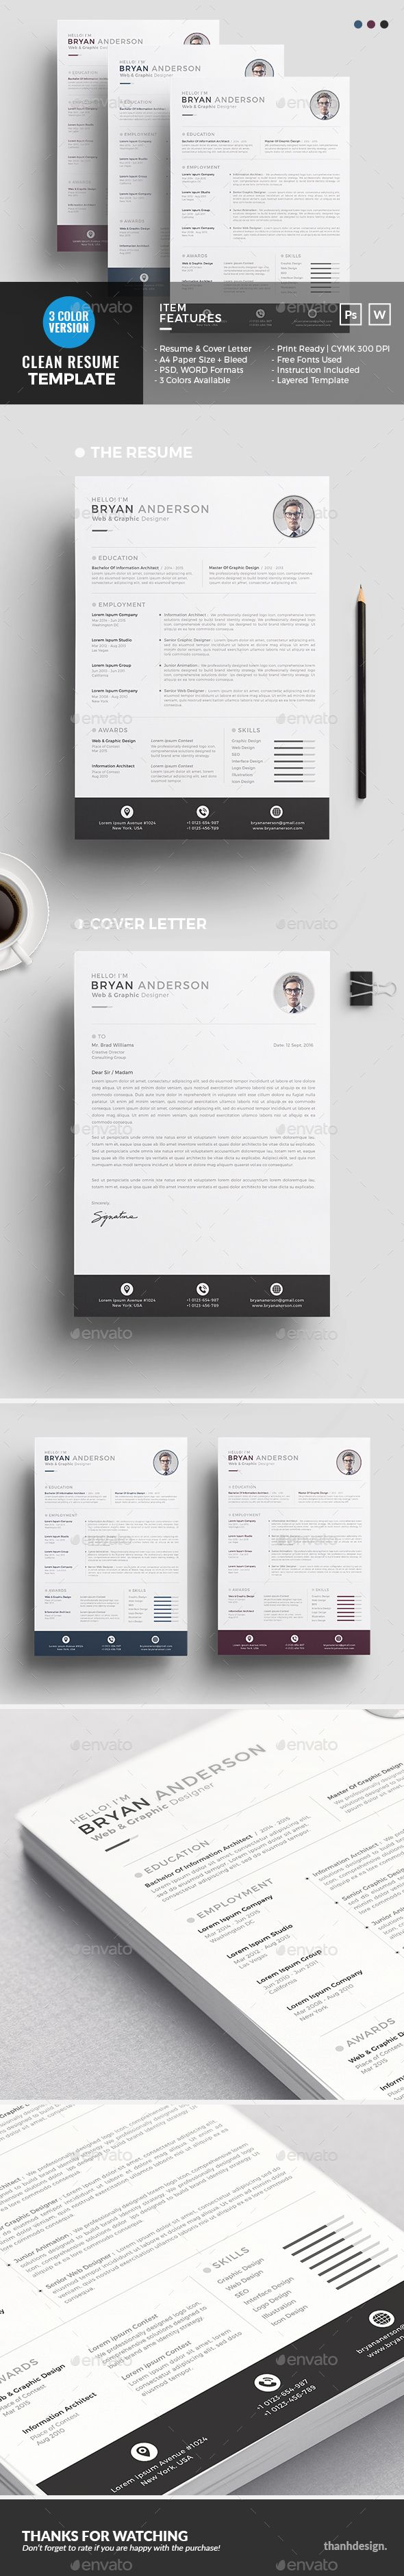 Resume Design Template Resumes Template PSD